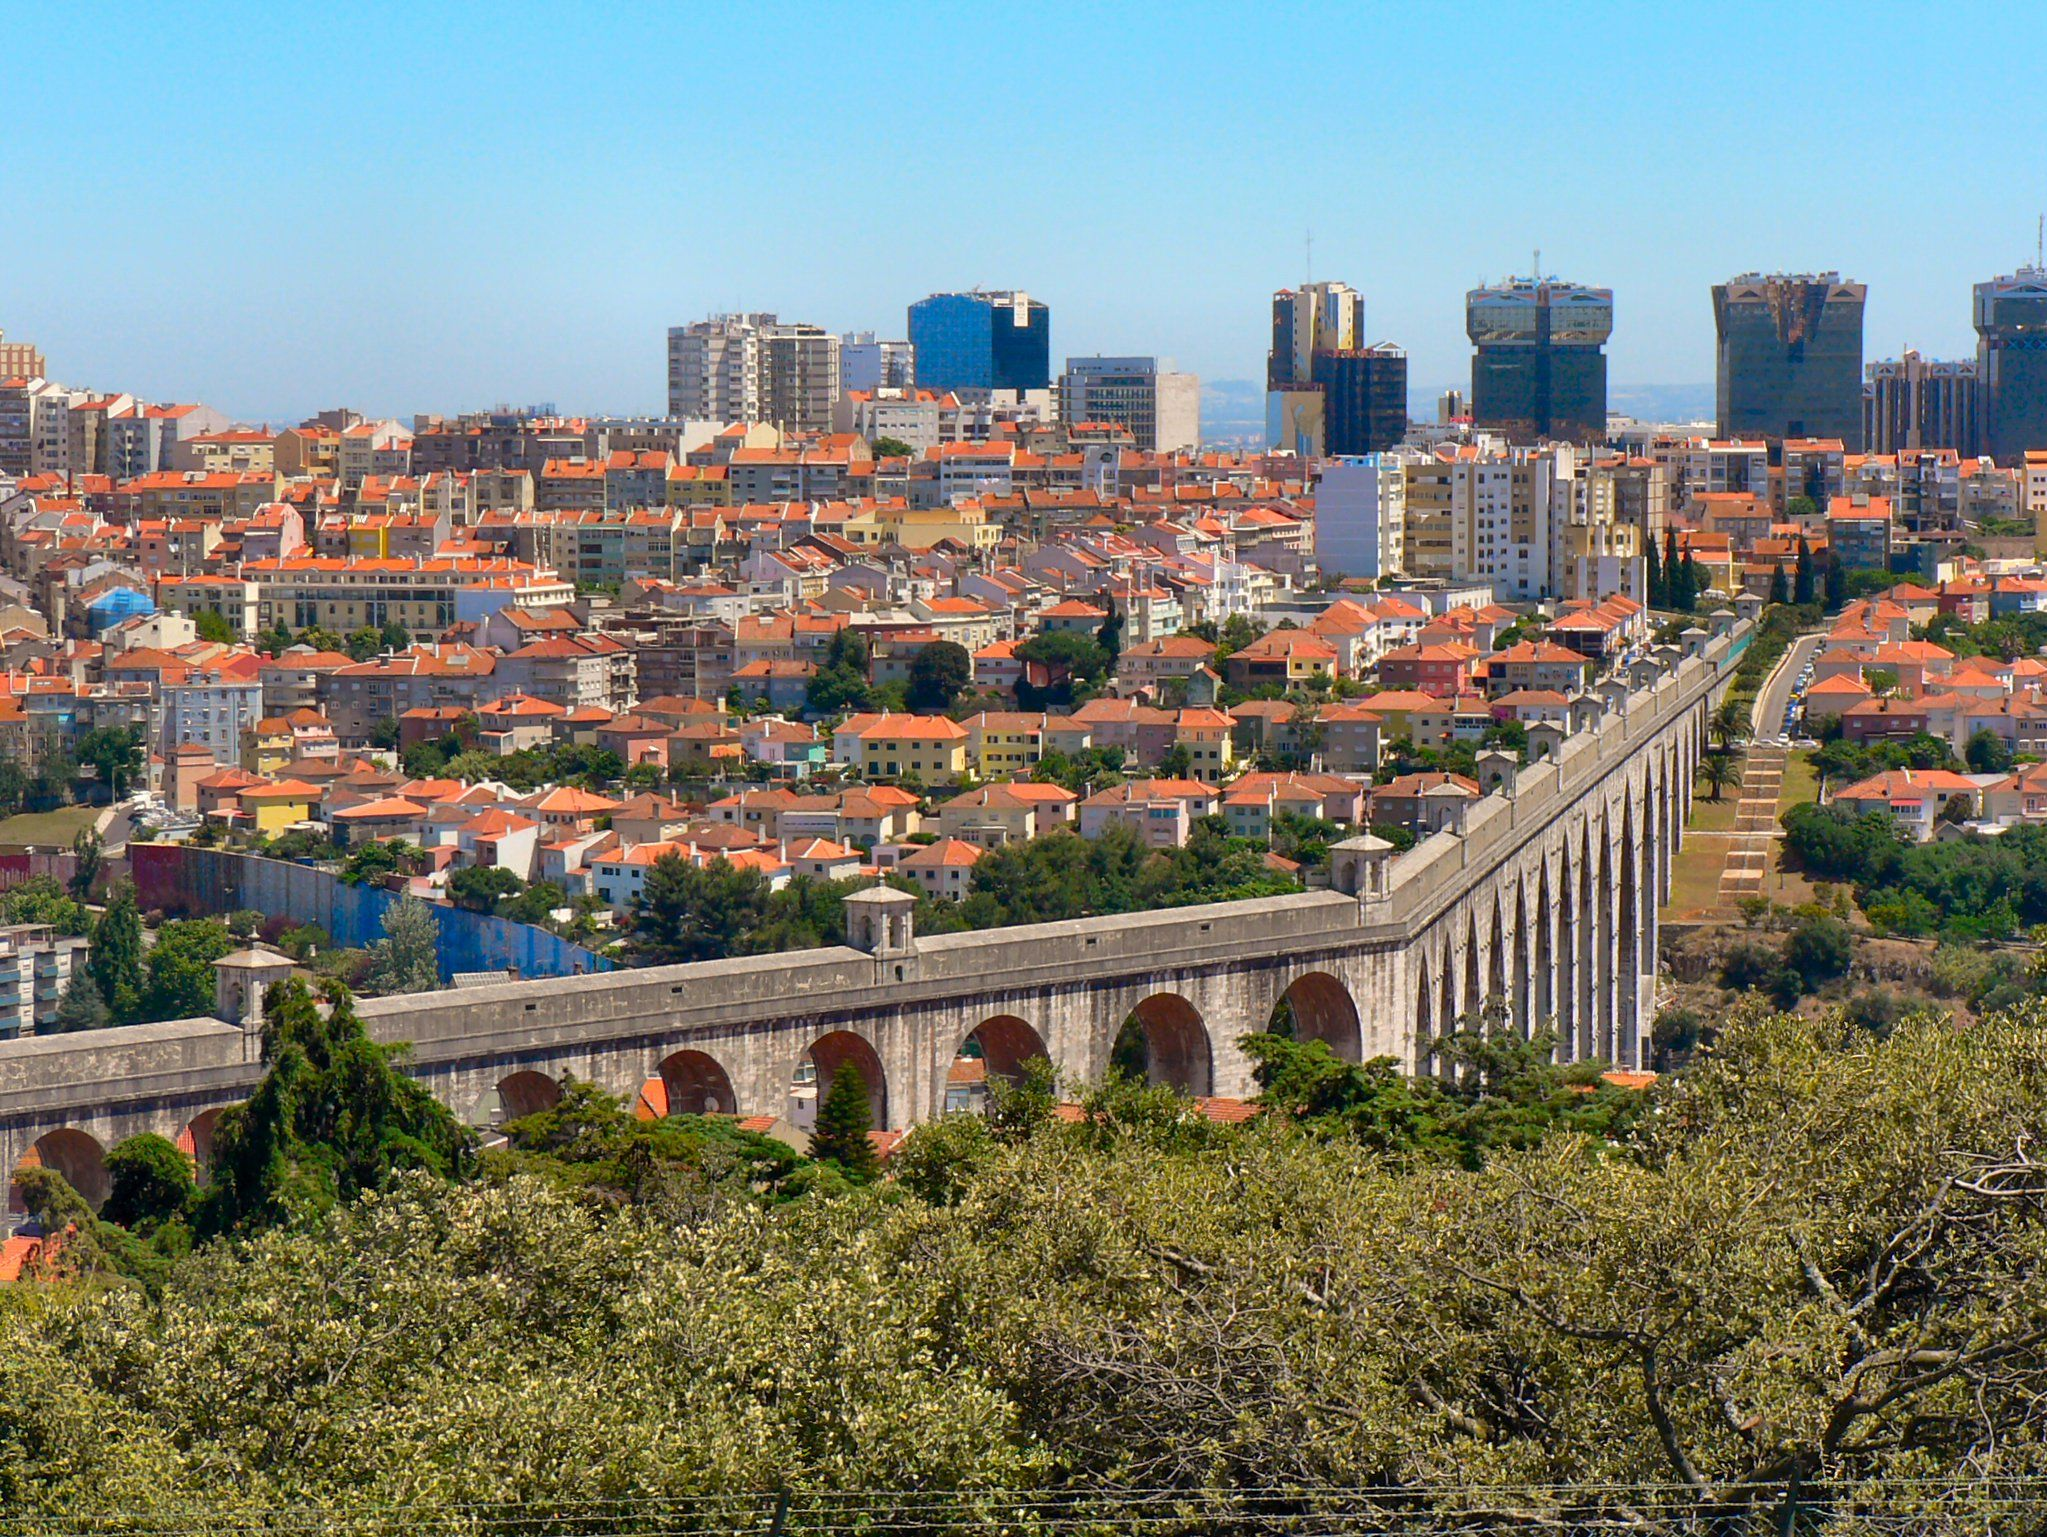 Discover the giant stone aqueduct that crosses Lisboa and contributed so much to its development. #VisitLisboa https://t.co/2YHiOOWwm0